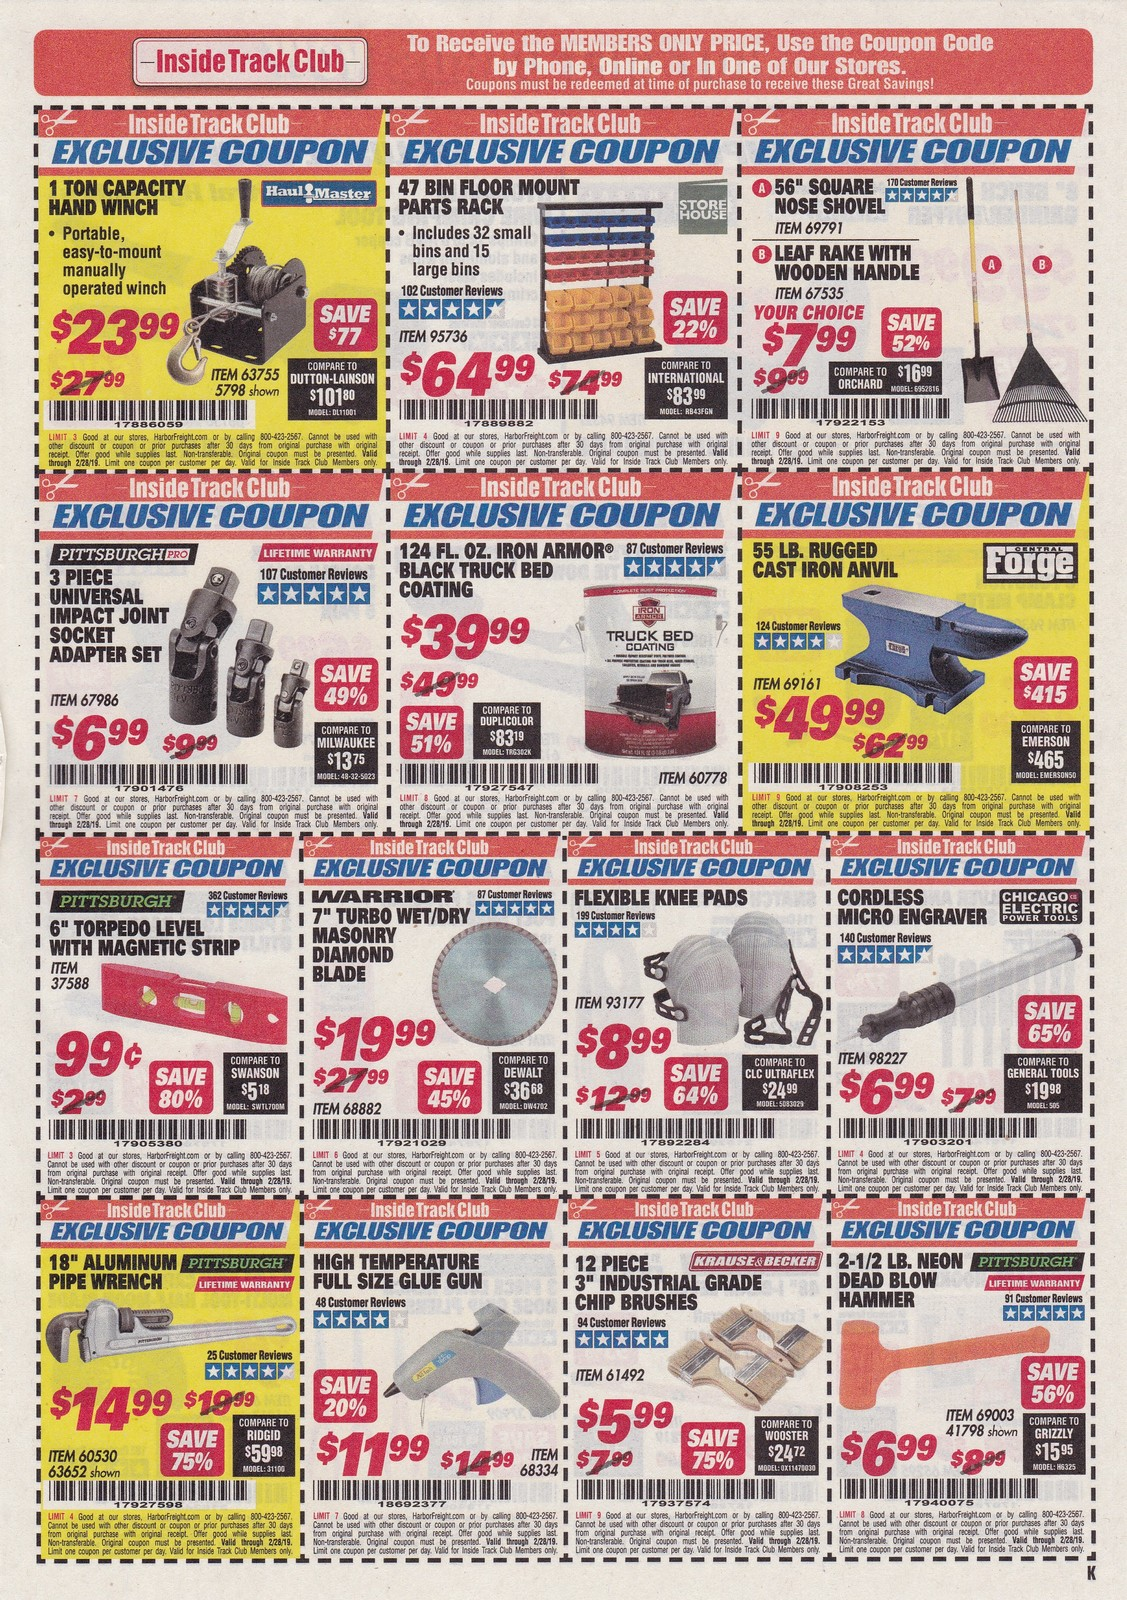 Fleet Farm Coupons >> Harbor Freight Inside Track Club Coupons – February 2019 ...